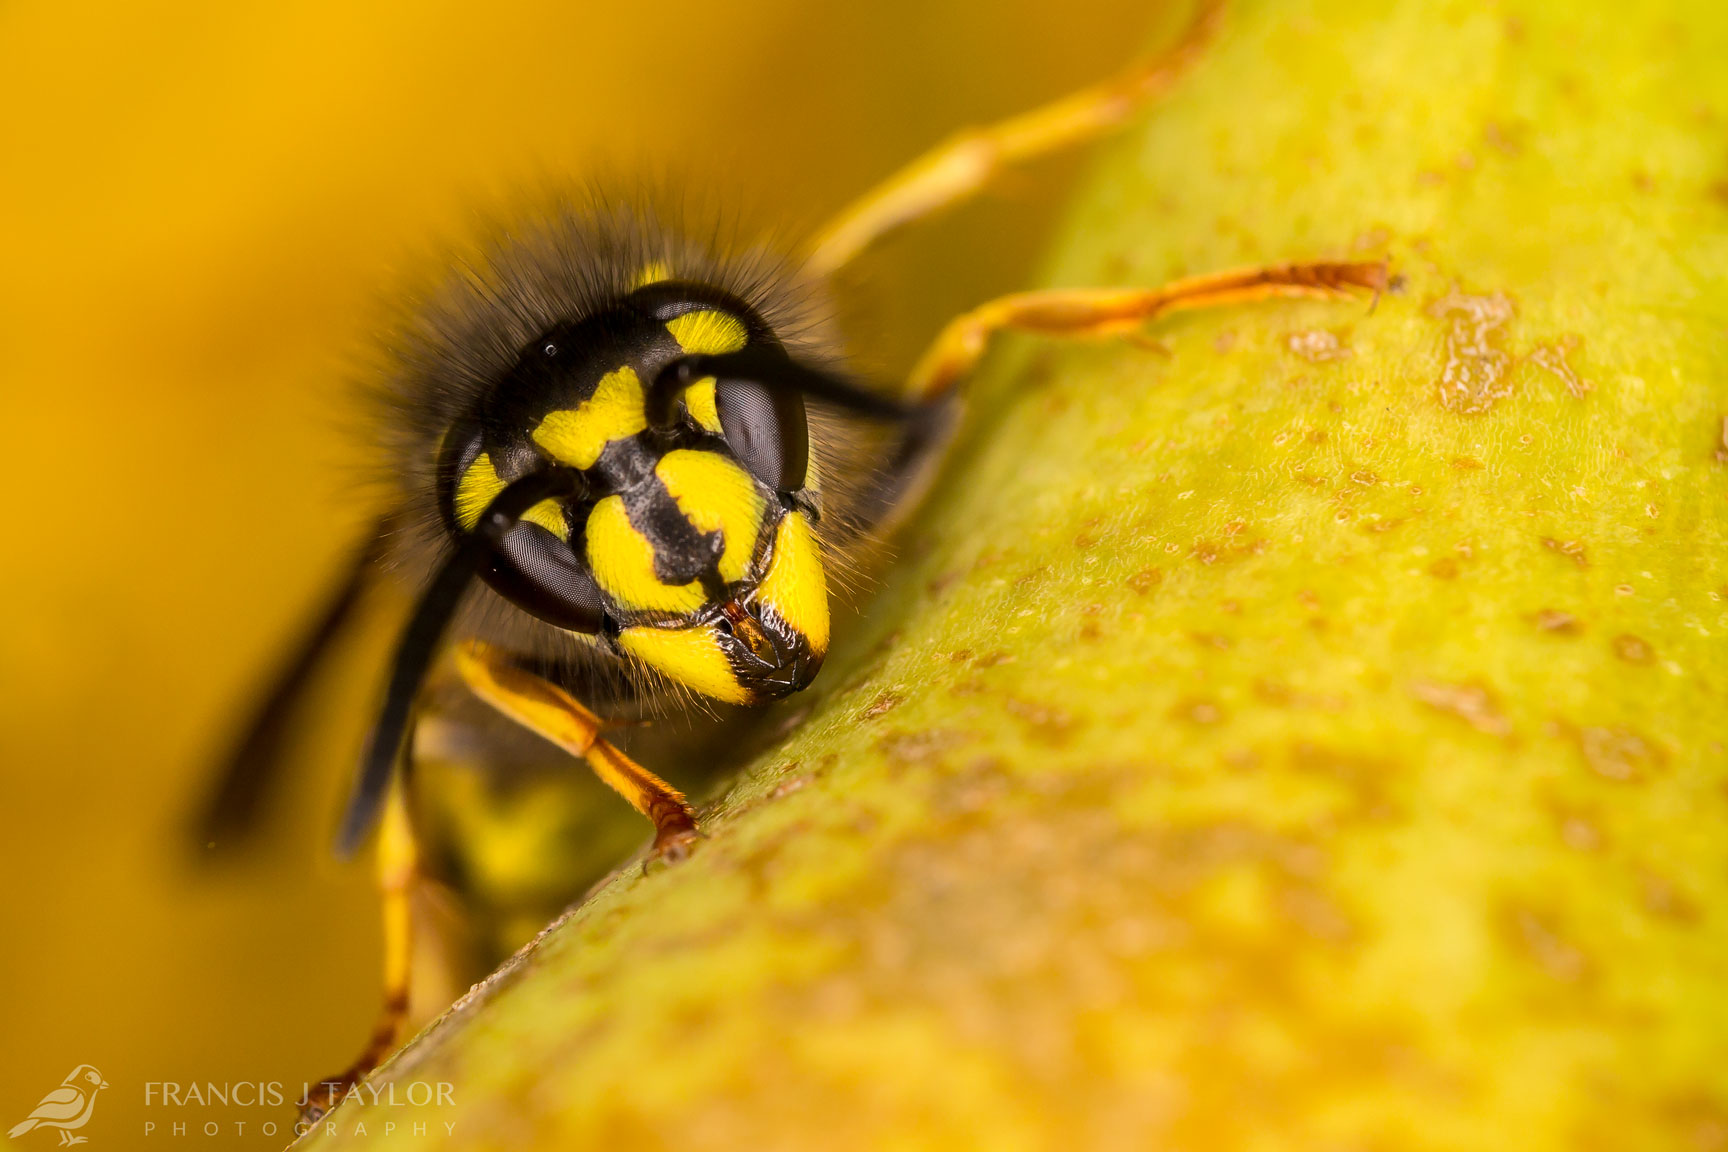 Common Wasp On A Pear